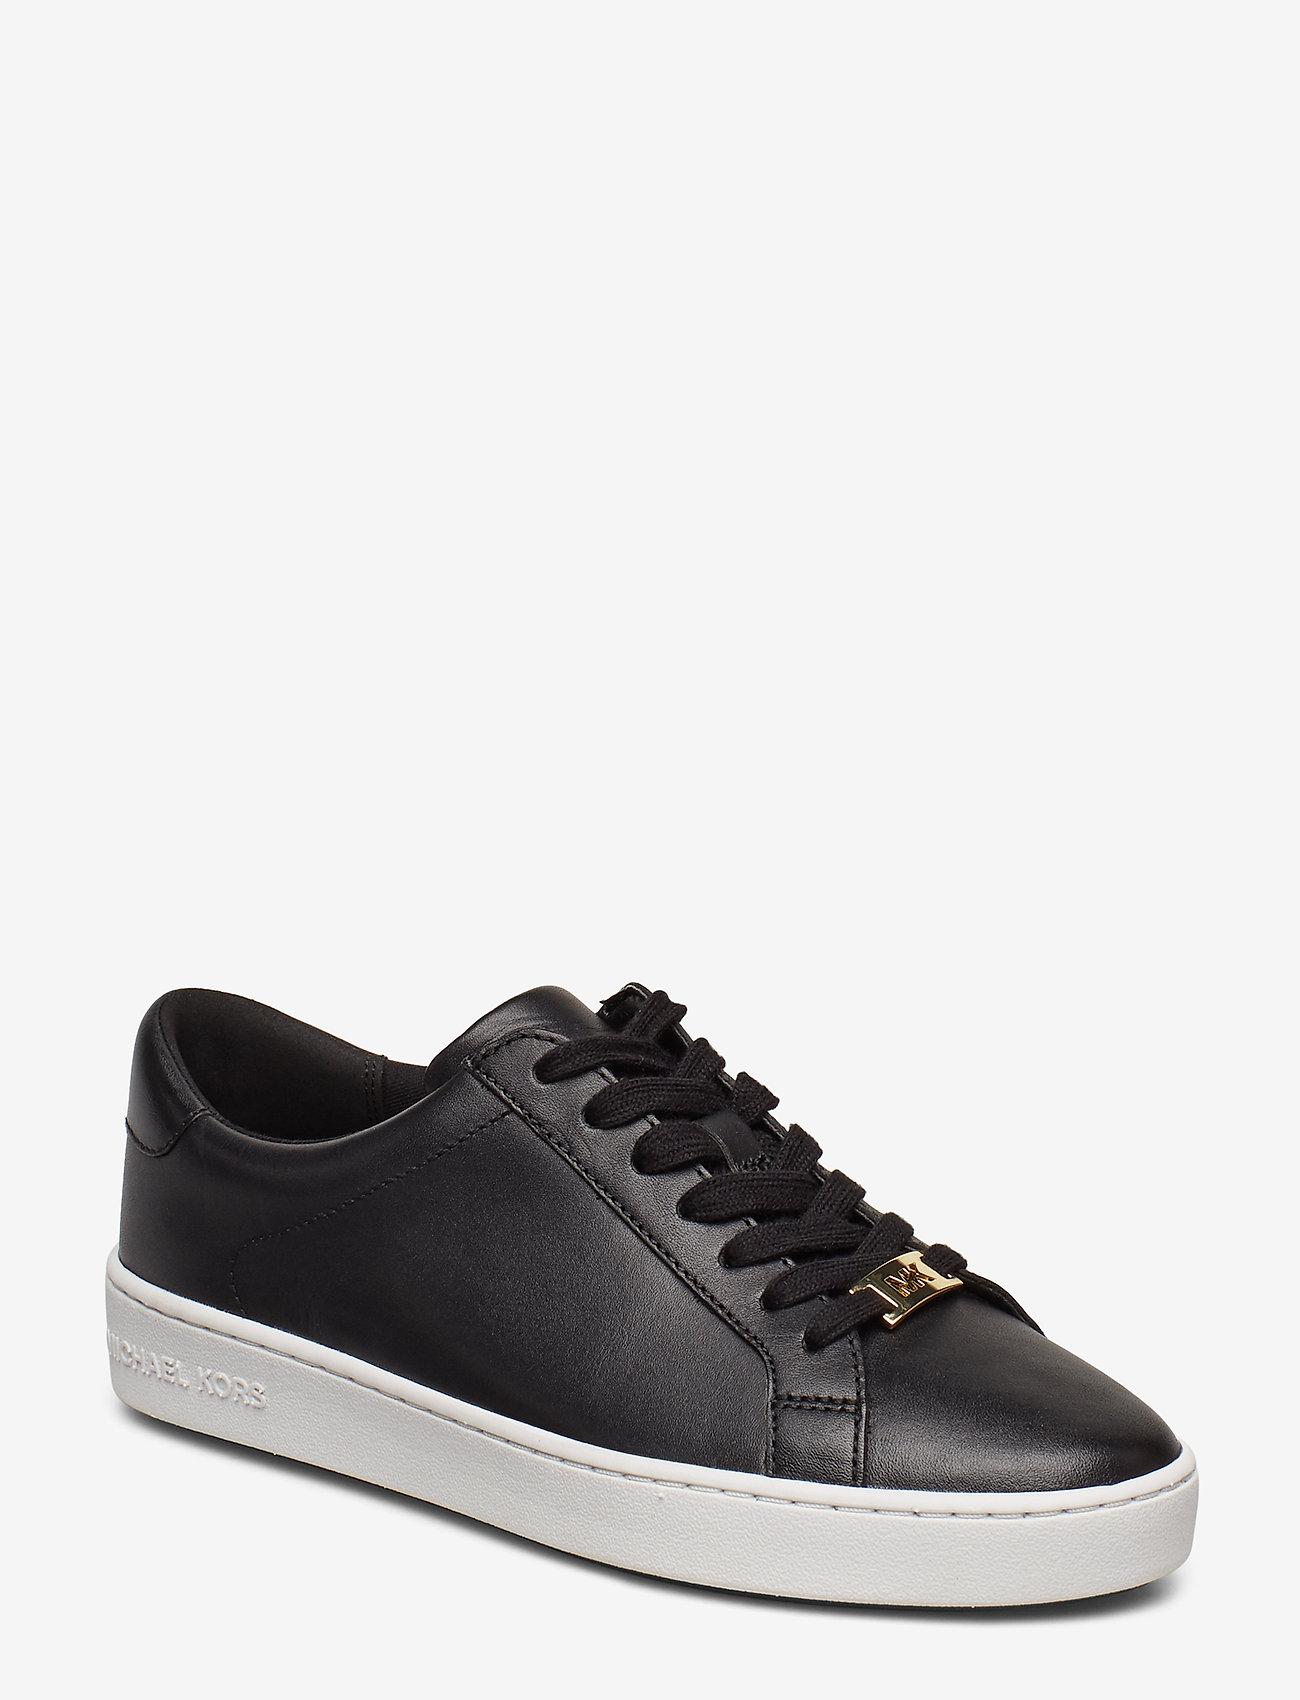 Michael Kors - IRVING LACE UP - lage sneakers - black - 0